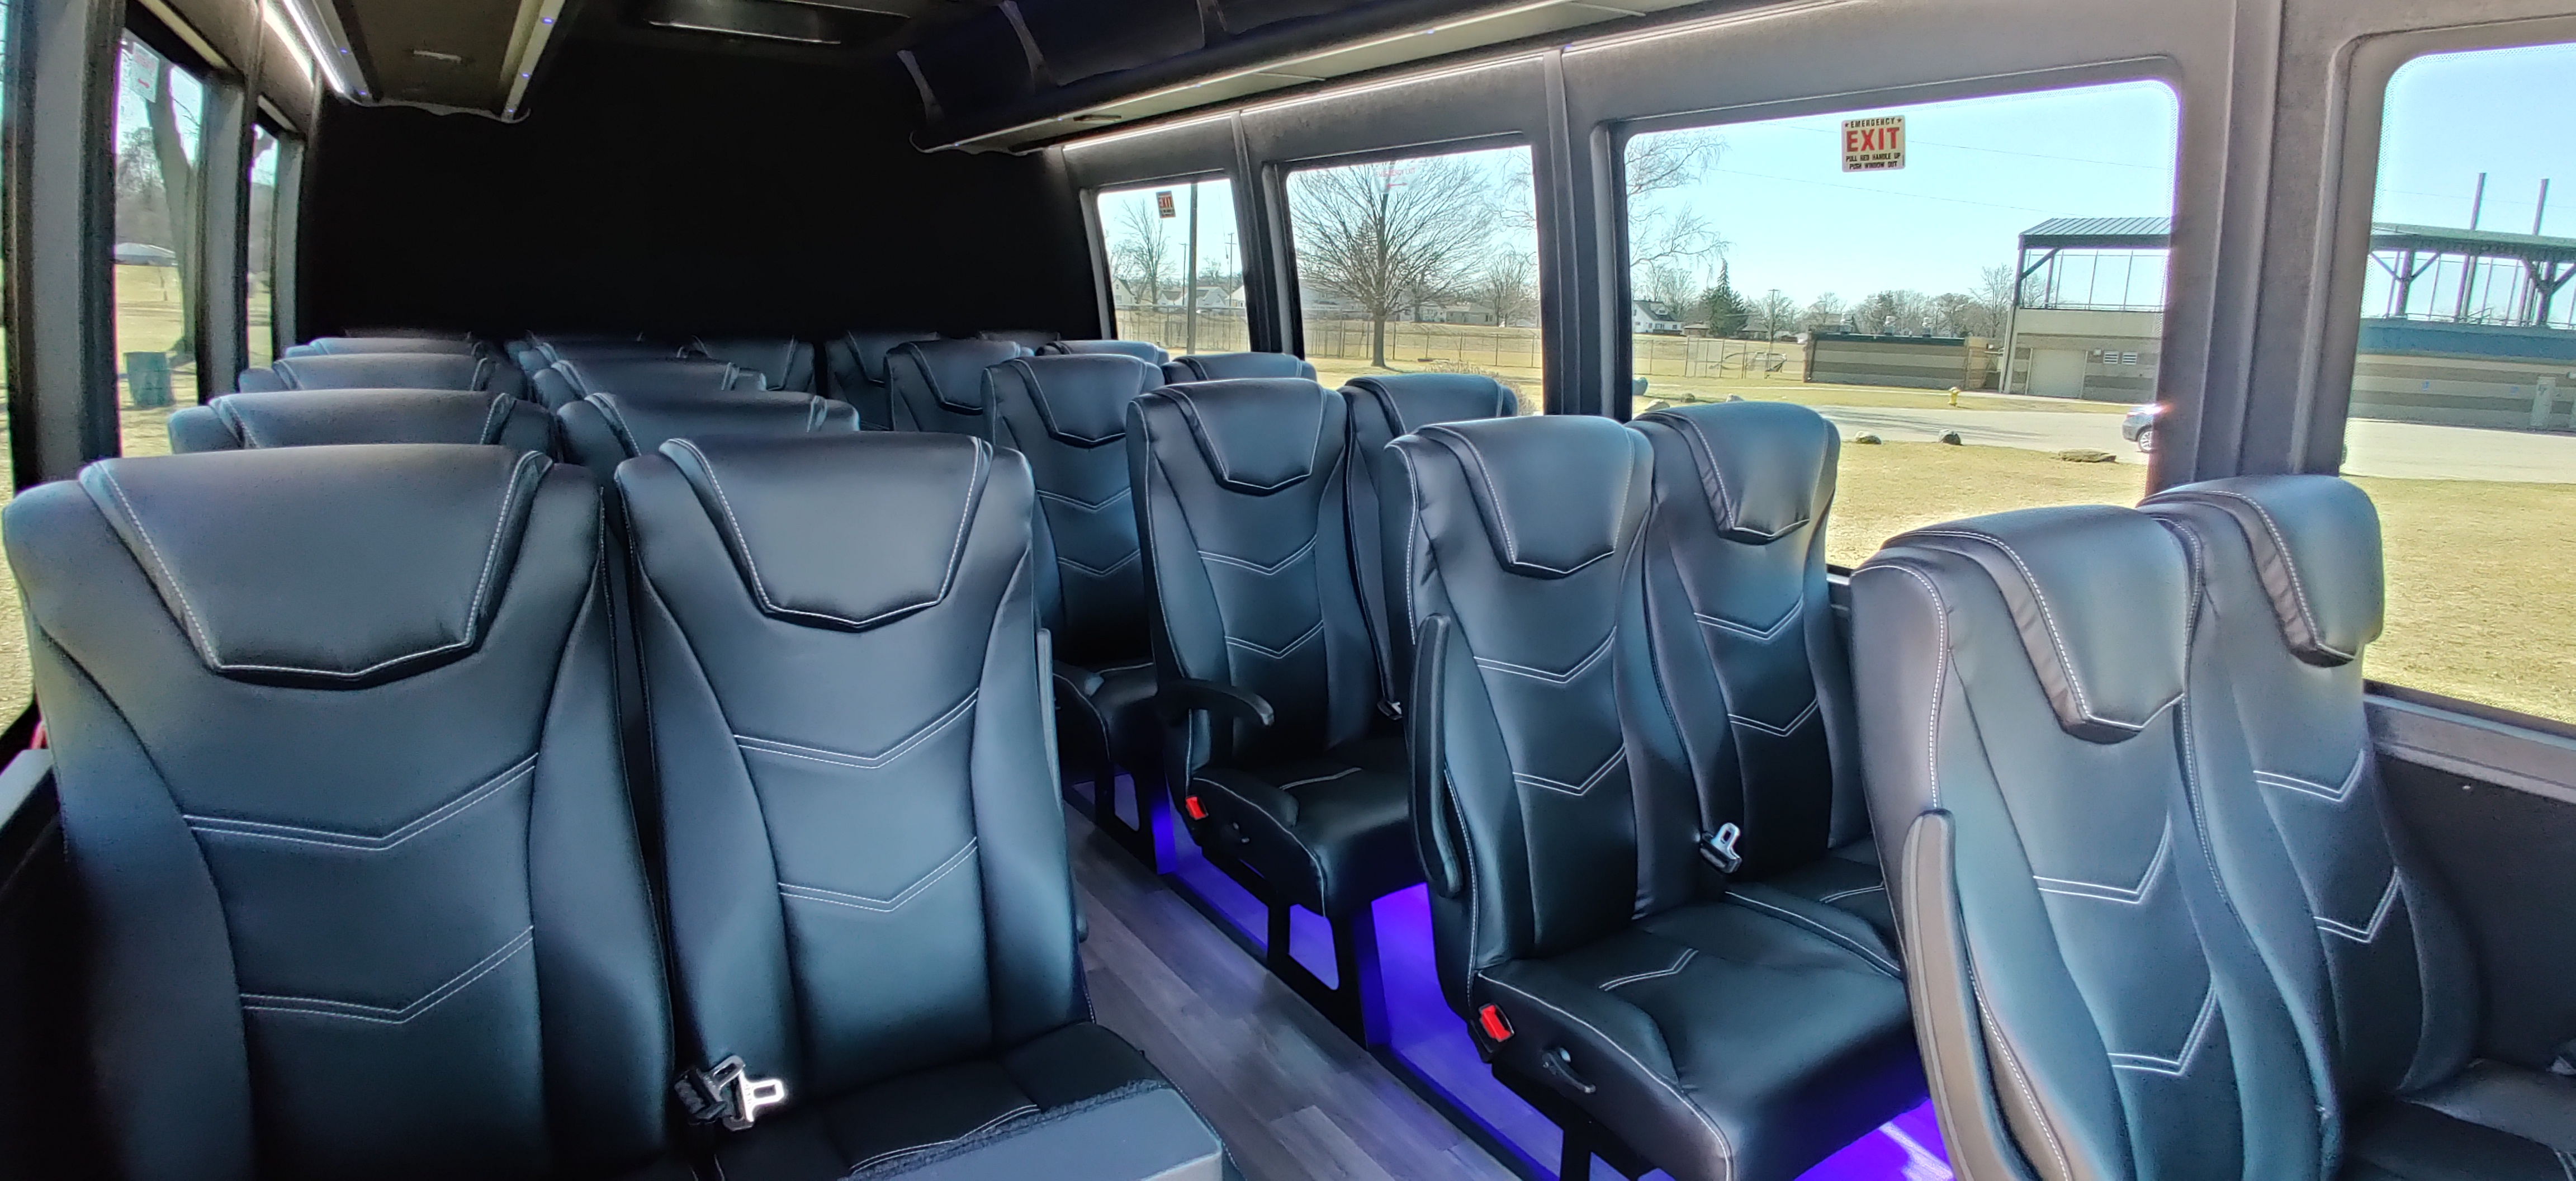 23 Passenger Executive Shuttle Bus Interior 1